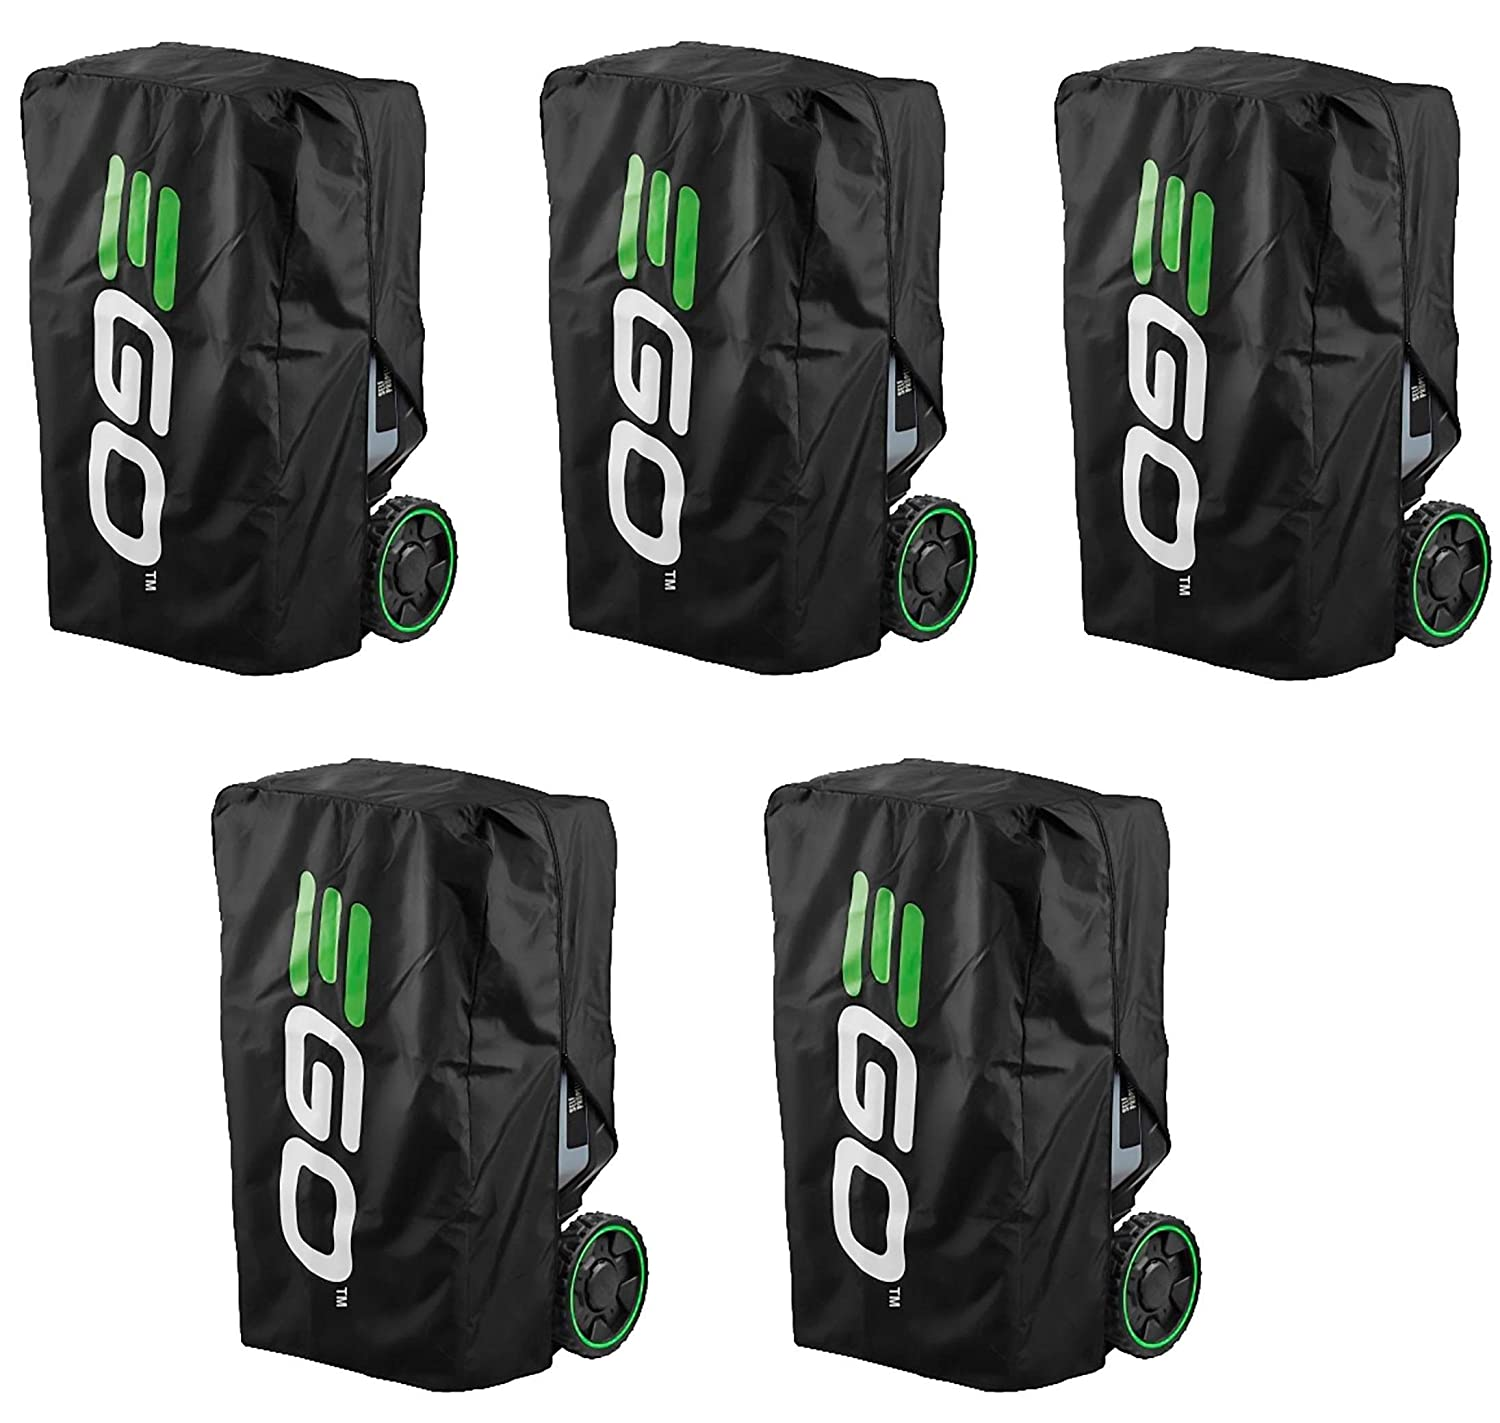 Fivе Расk Dirt and Debris Black EGO Power+ CM001 Cover for Walk-Behind Mower Durable Fabric to Protect Against Dust